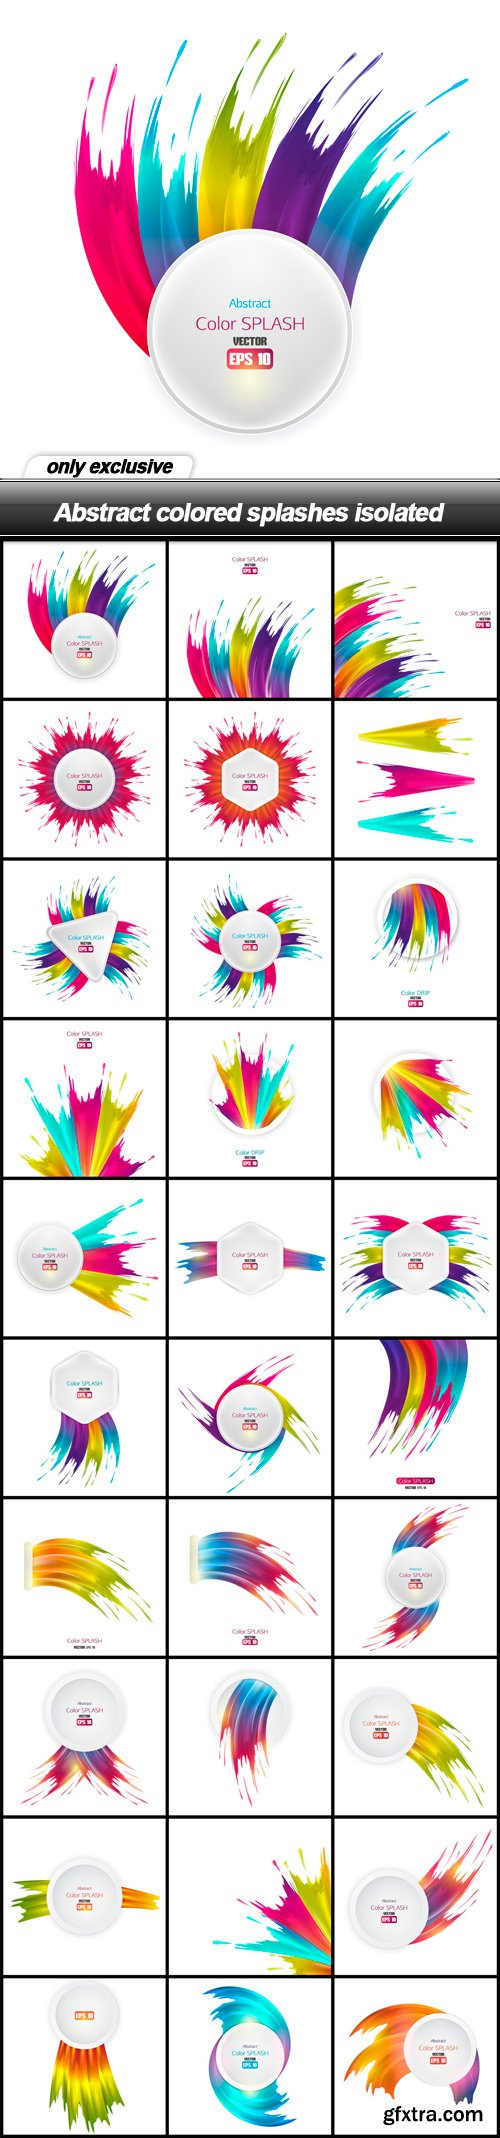 Abstract colored splashes isolated - 30 EPS